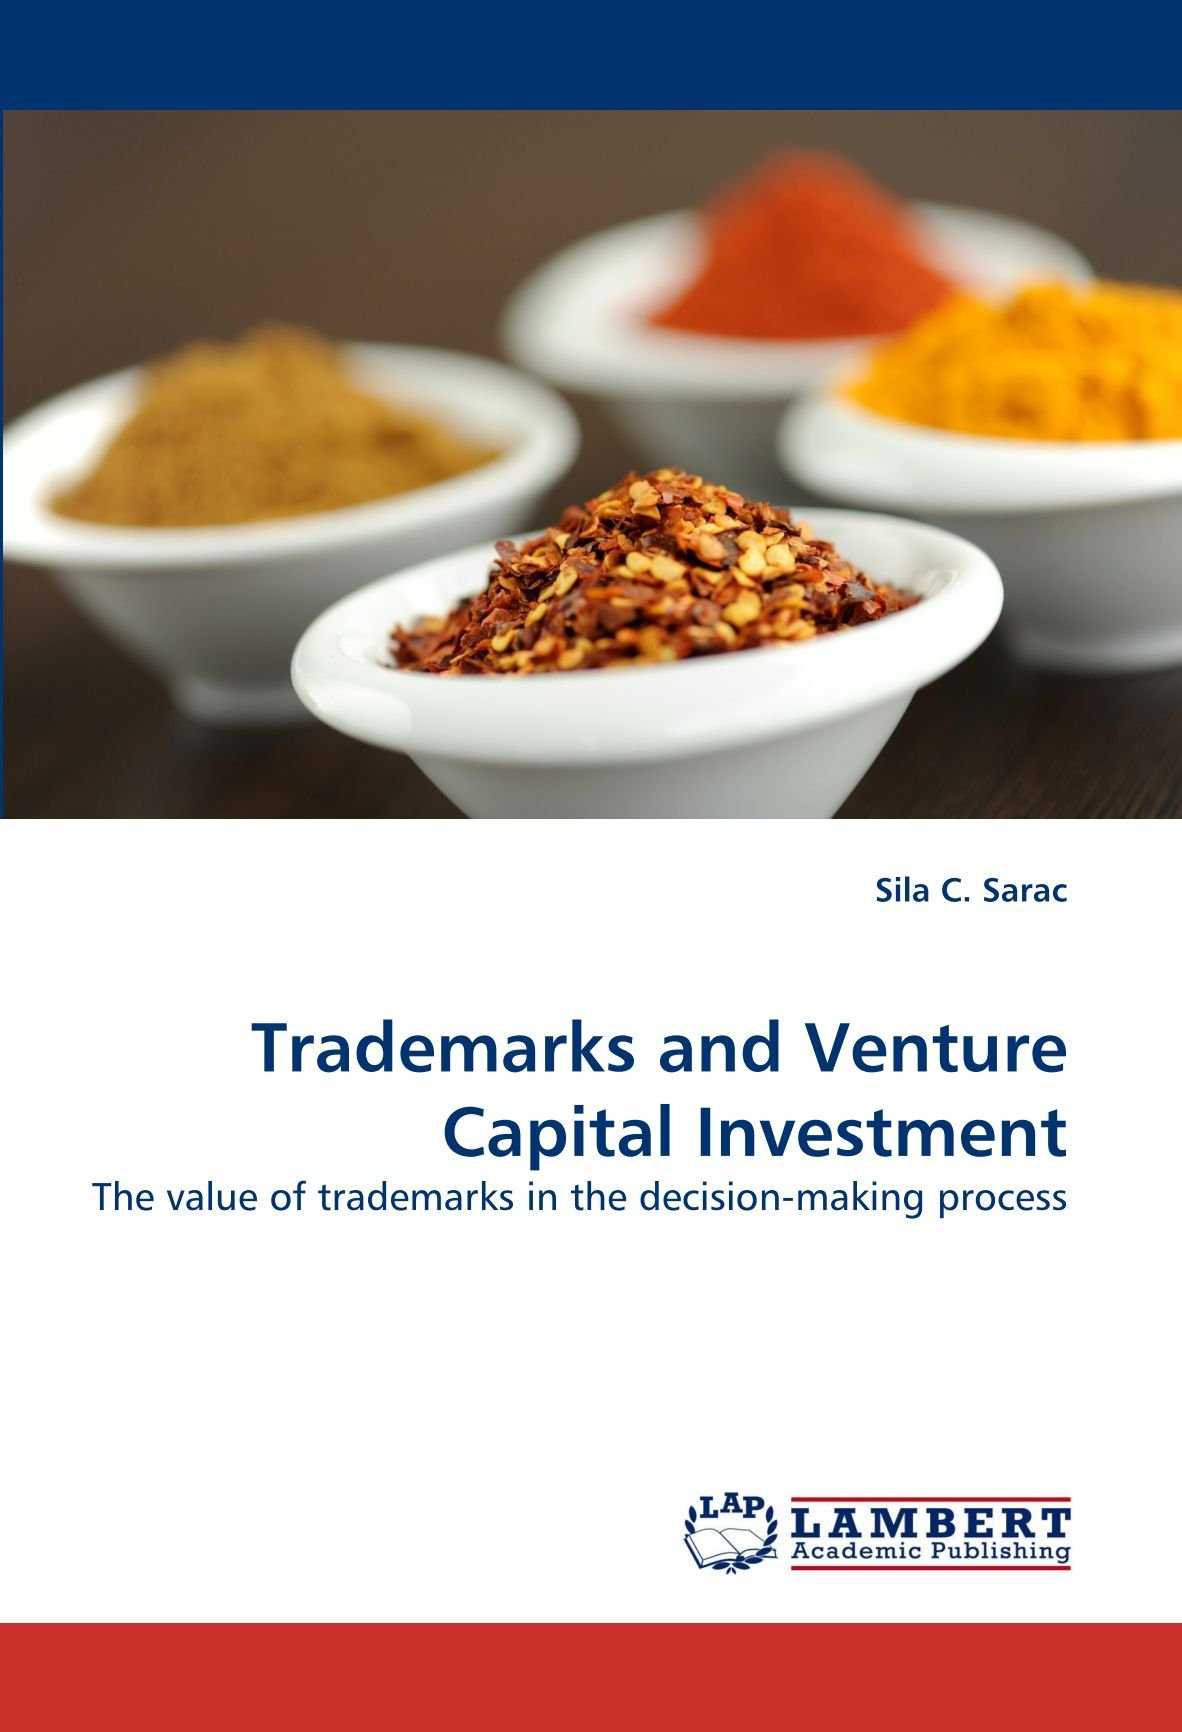 Trademarks and Venture Capital Investment: The value of trademarks in the decision-making process